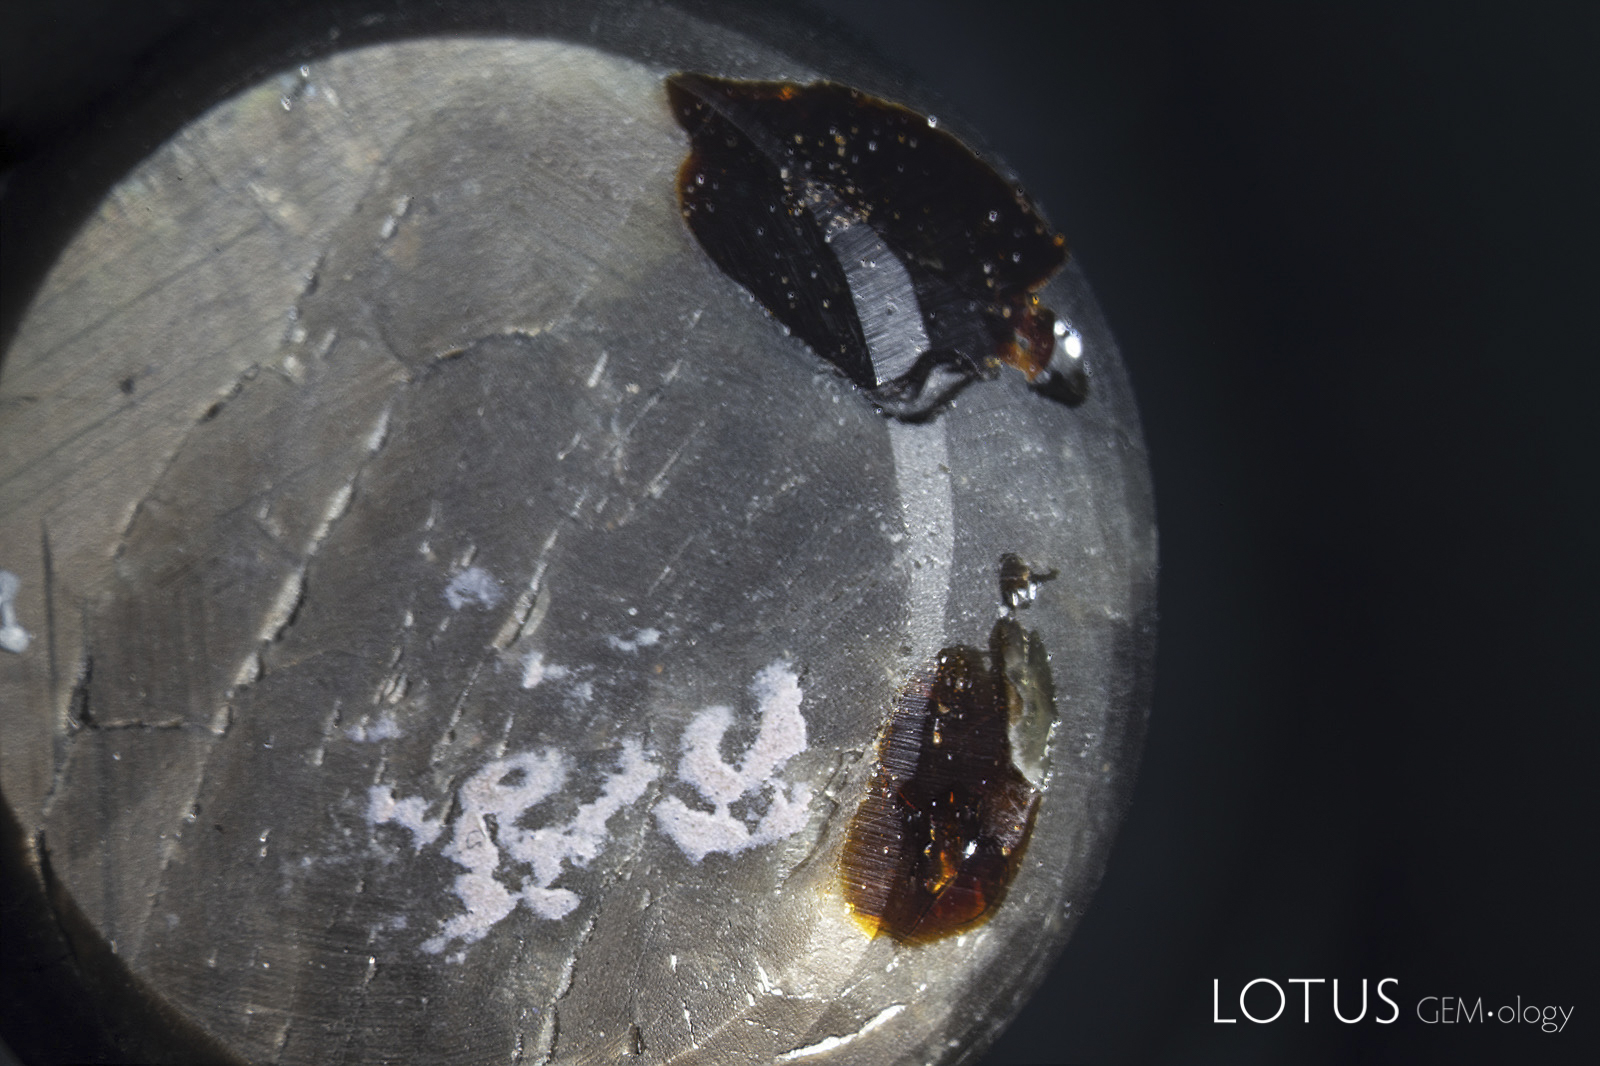 Left: Two large pits on the back of the star sapphire in question. One can see the brown dopping varnish (the white areas are adhesive from tape).